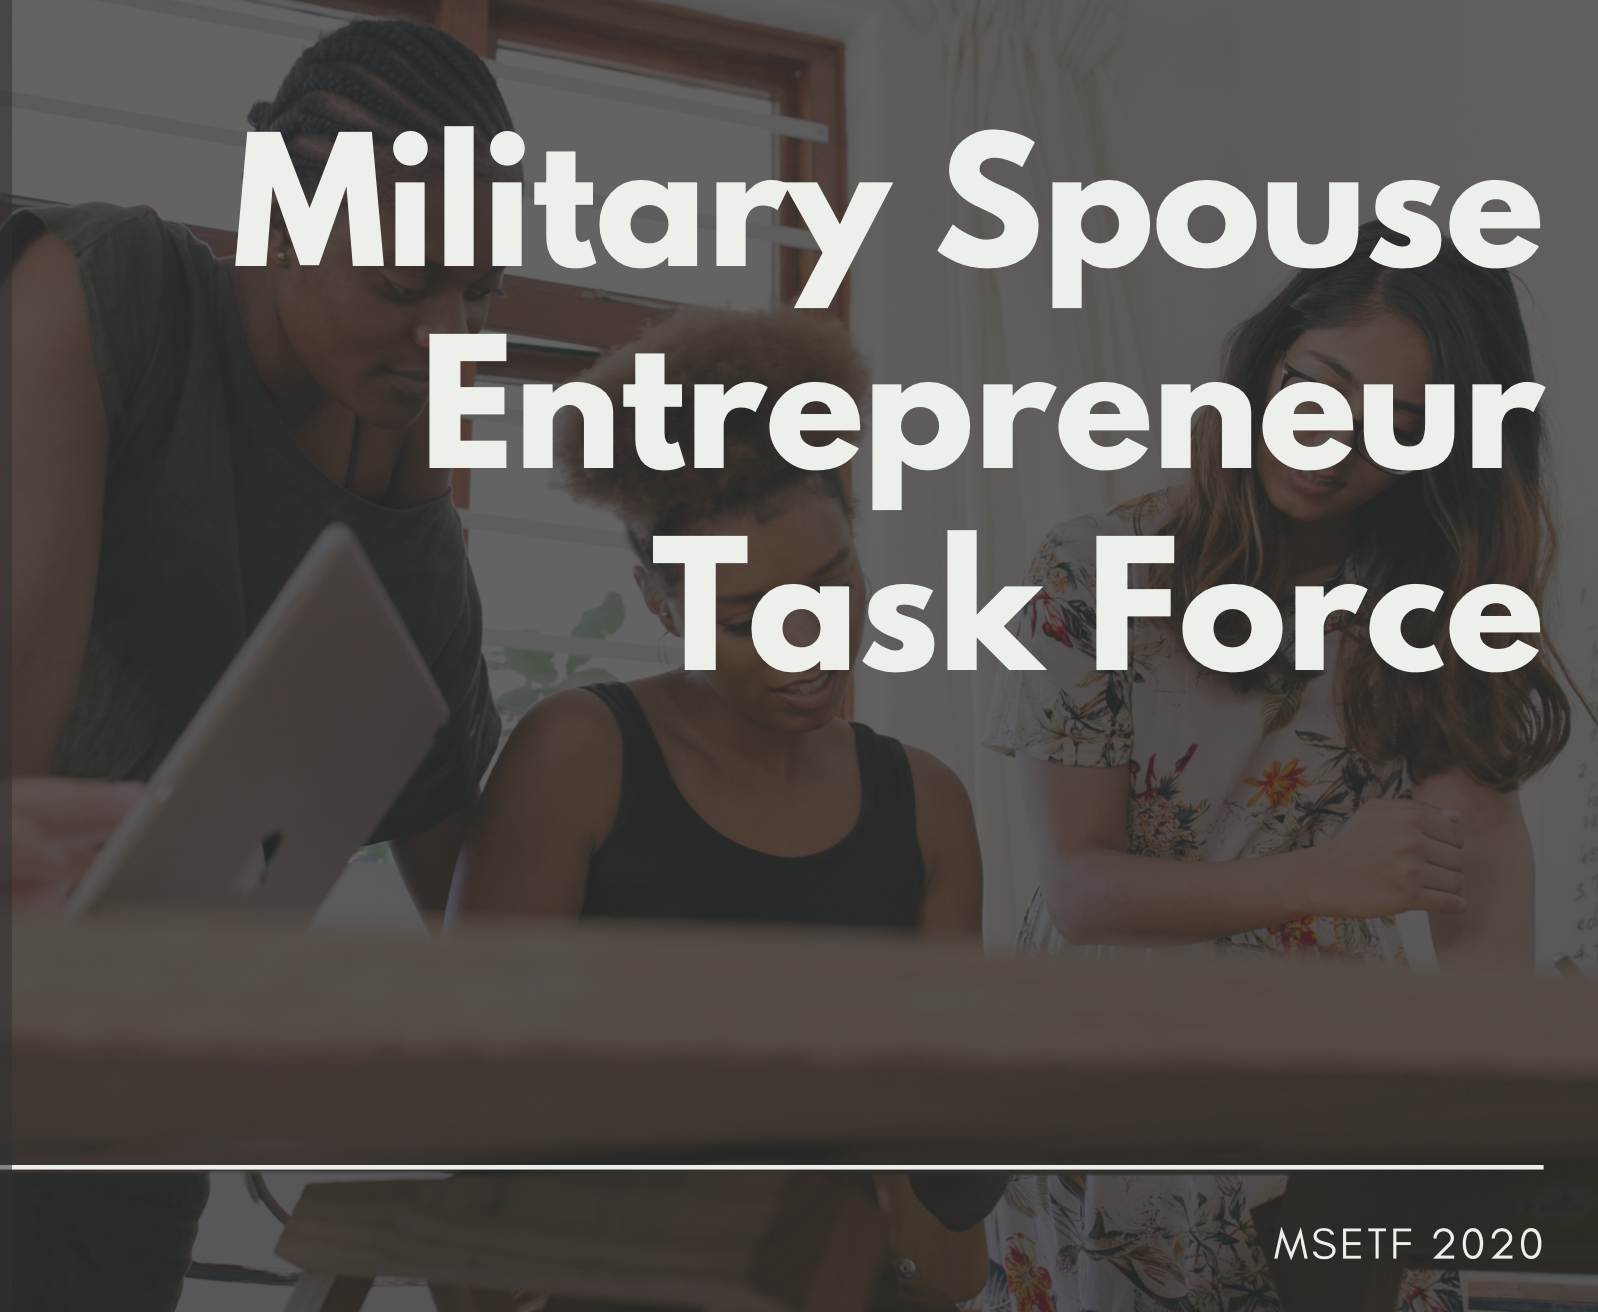 Military Spouse Entrepreneur Task Force About image